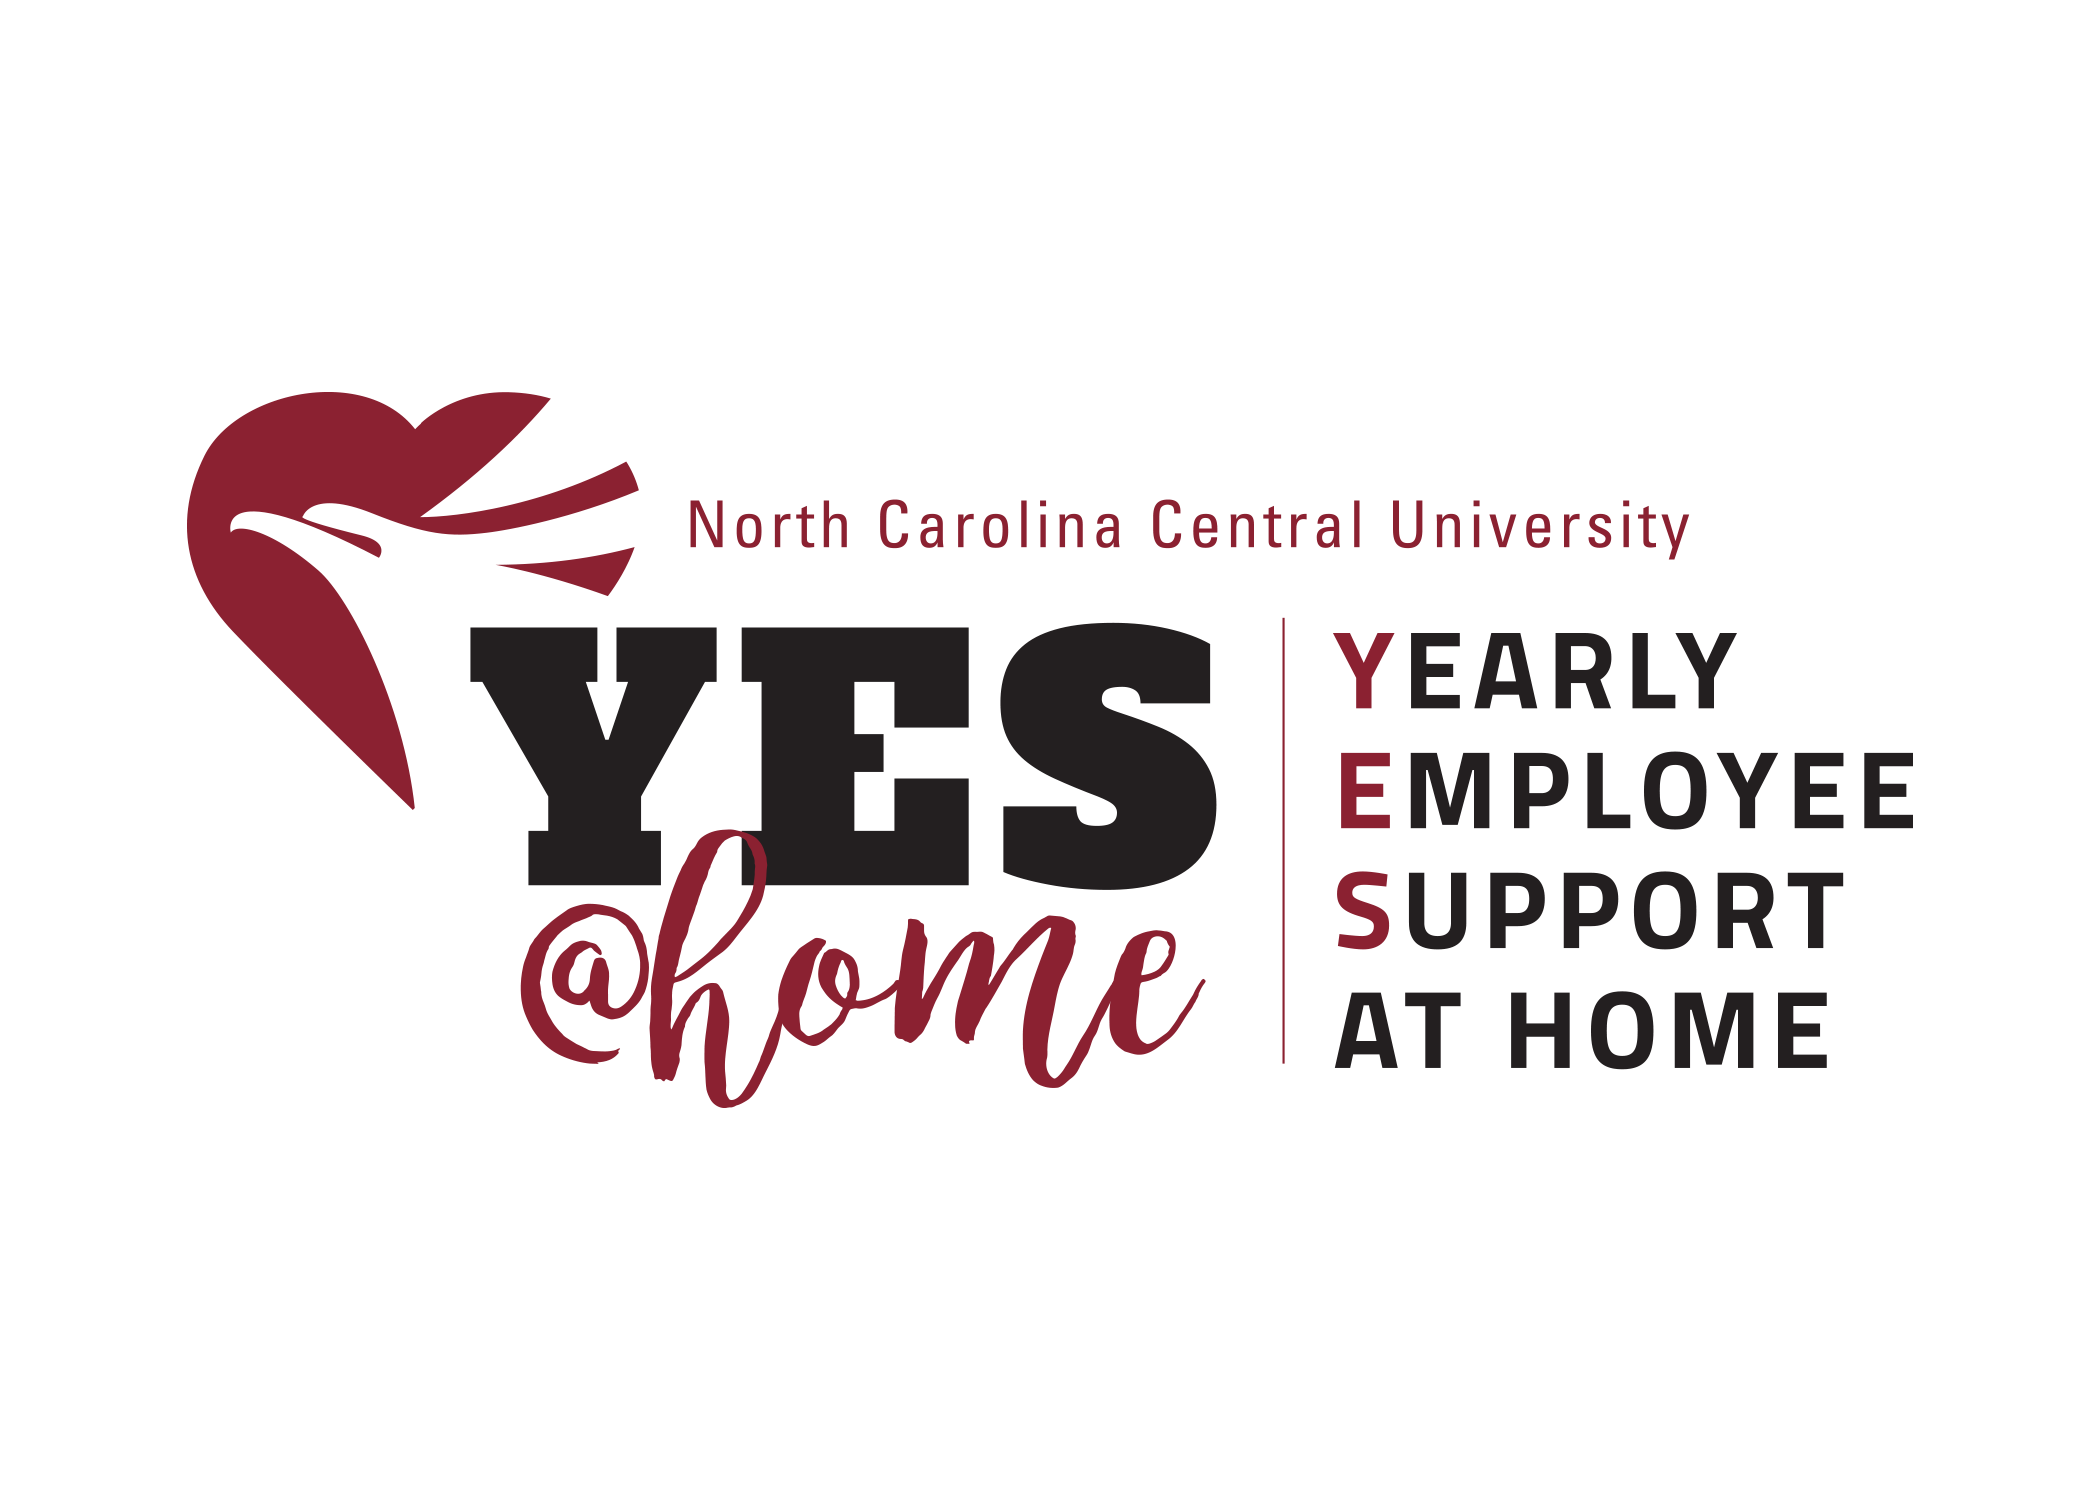 Yes Campaign Logo showing Yearly Employee Support at home